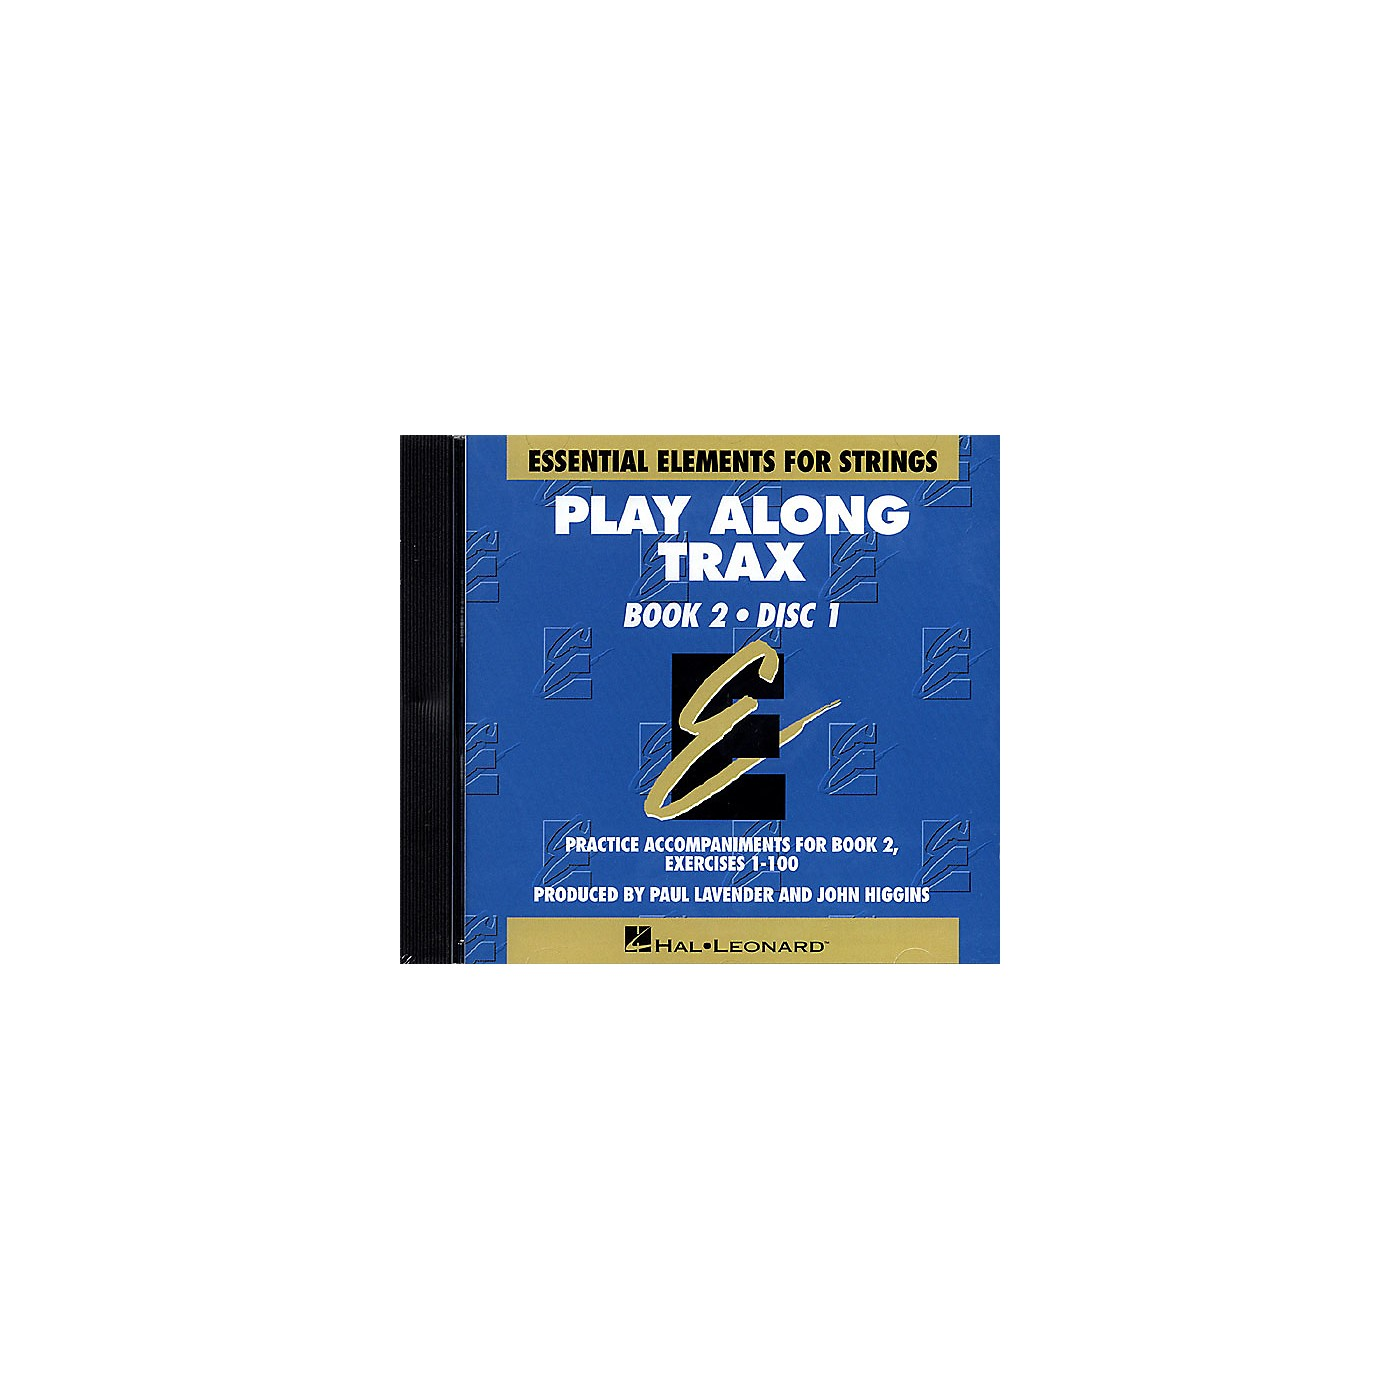 Hal Leonard Essential Elements for Strings Play-Along Trax - Book 2, Disc 1 Essential Elements CD by John Higgins thumbnail